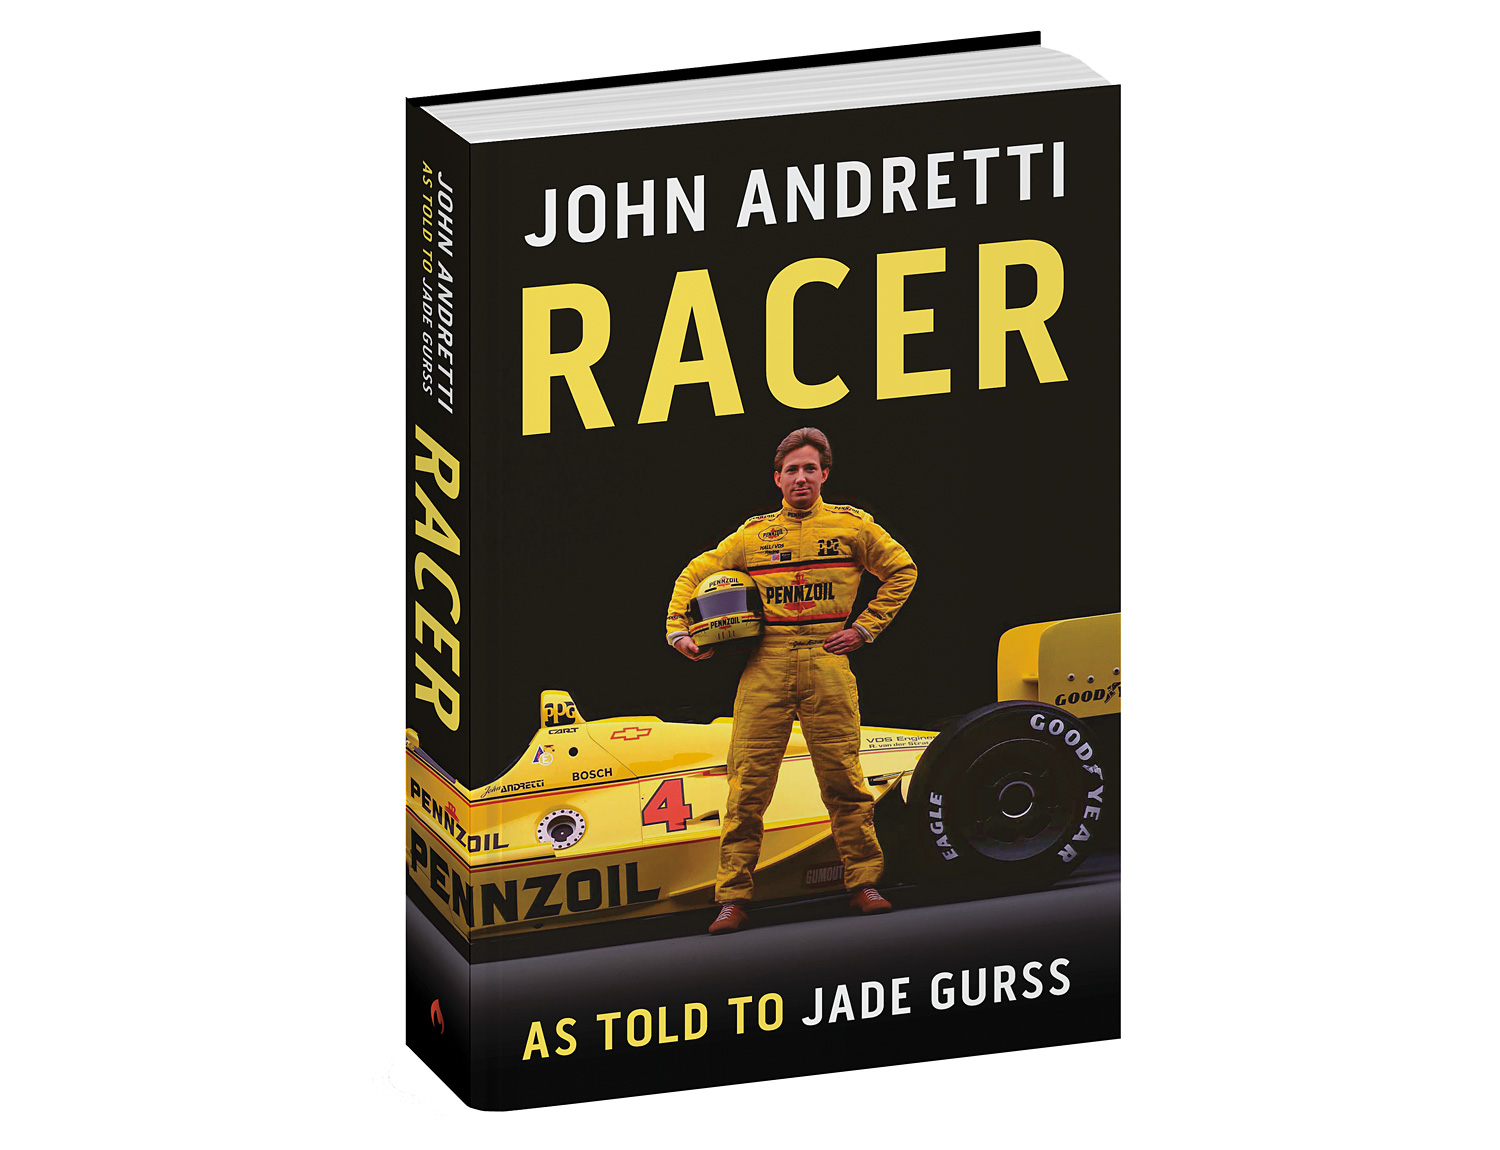 Racer: John Andretti Biography at werd.com